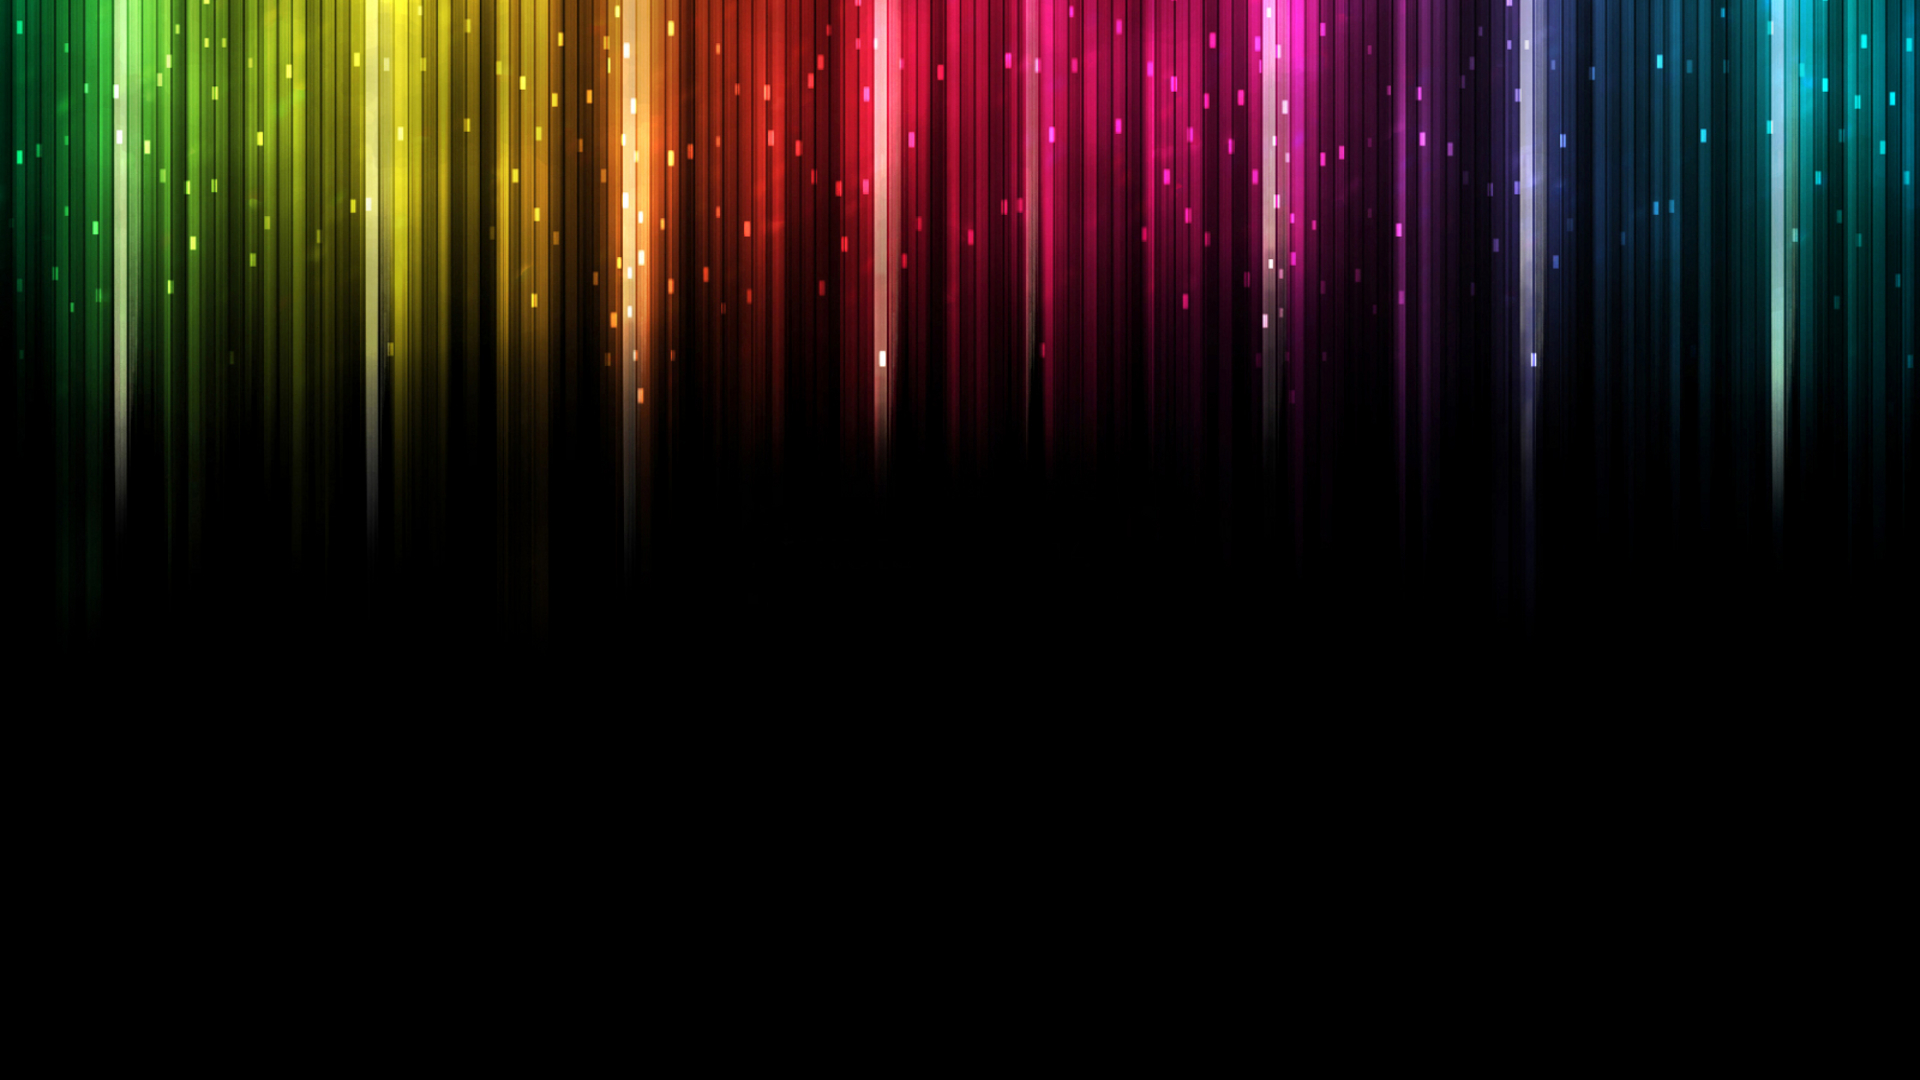 Abstract Wallpaper Pack Free Hd 1920×1080 Wallpapers Wallpaper